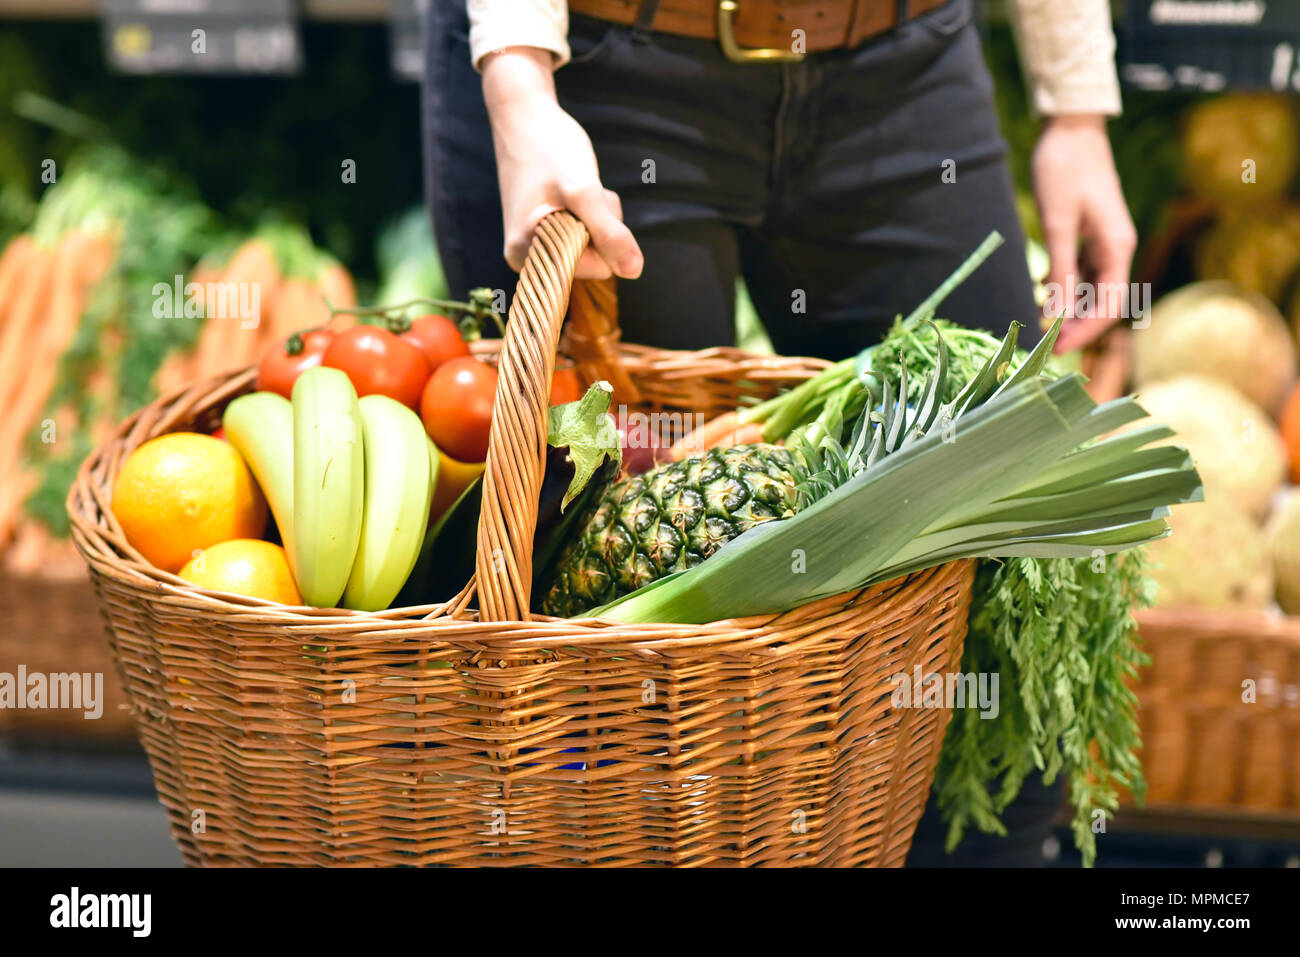 grocery shopping in the supermarket - filled shopping trolley with fresh fruit and vegetables - Stock Image